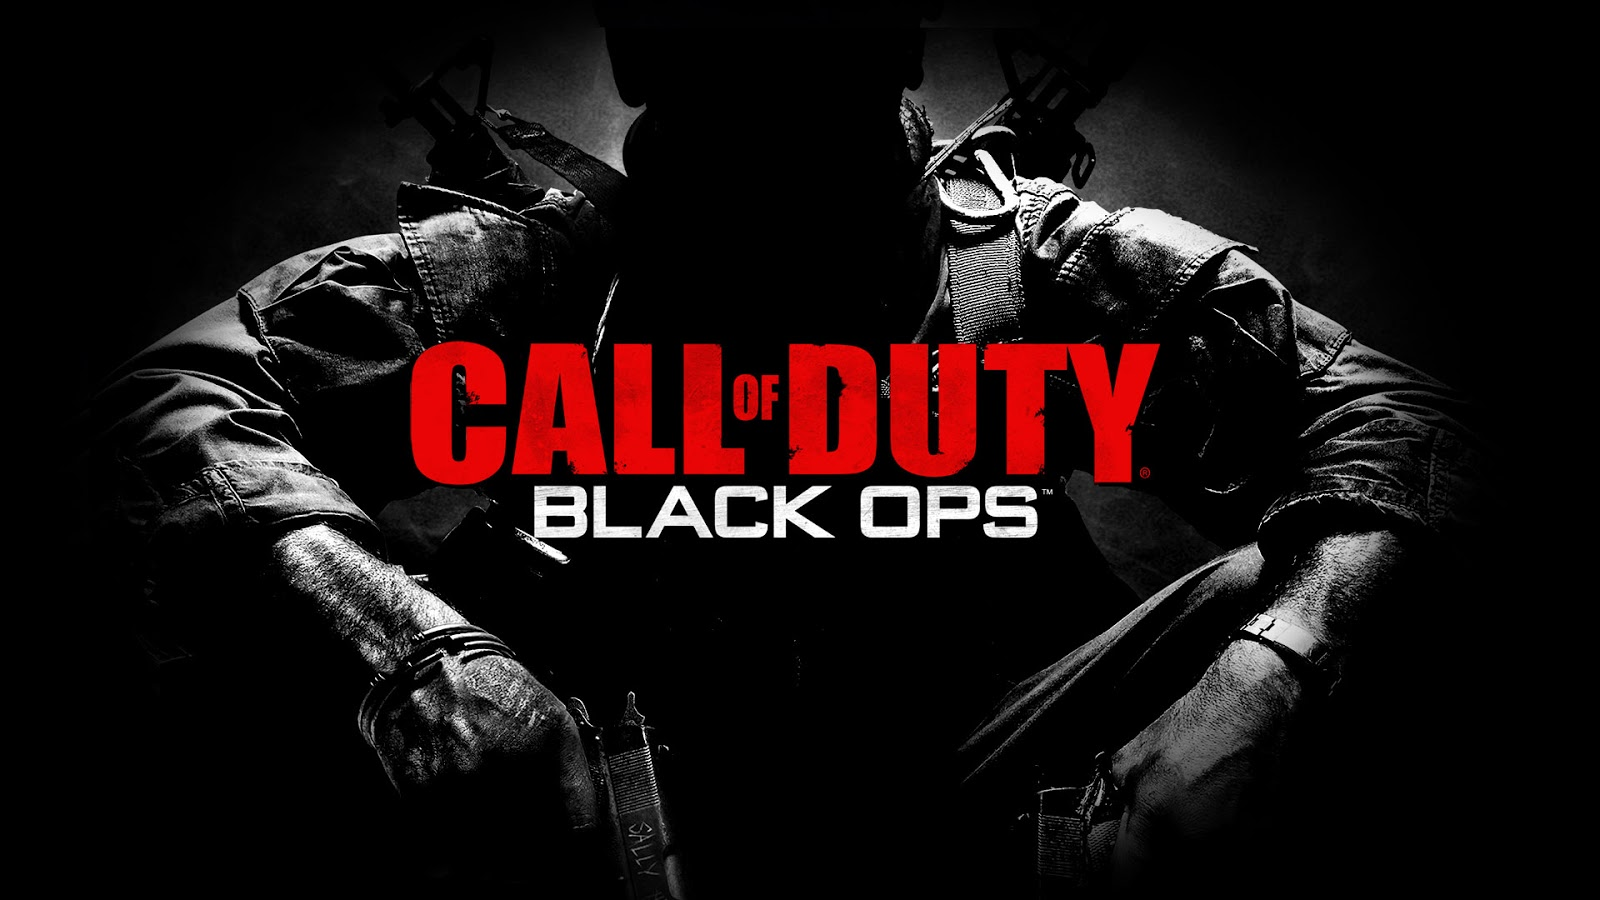 HD WALLPAPERS: Call of Duty Black Ops HD Wallpapers